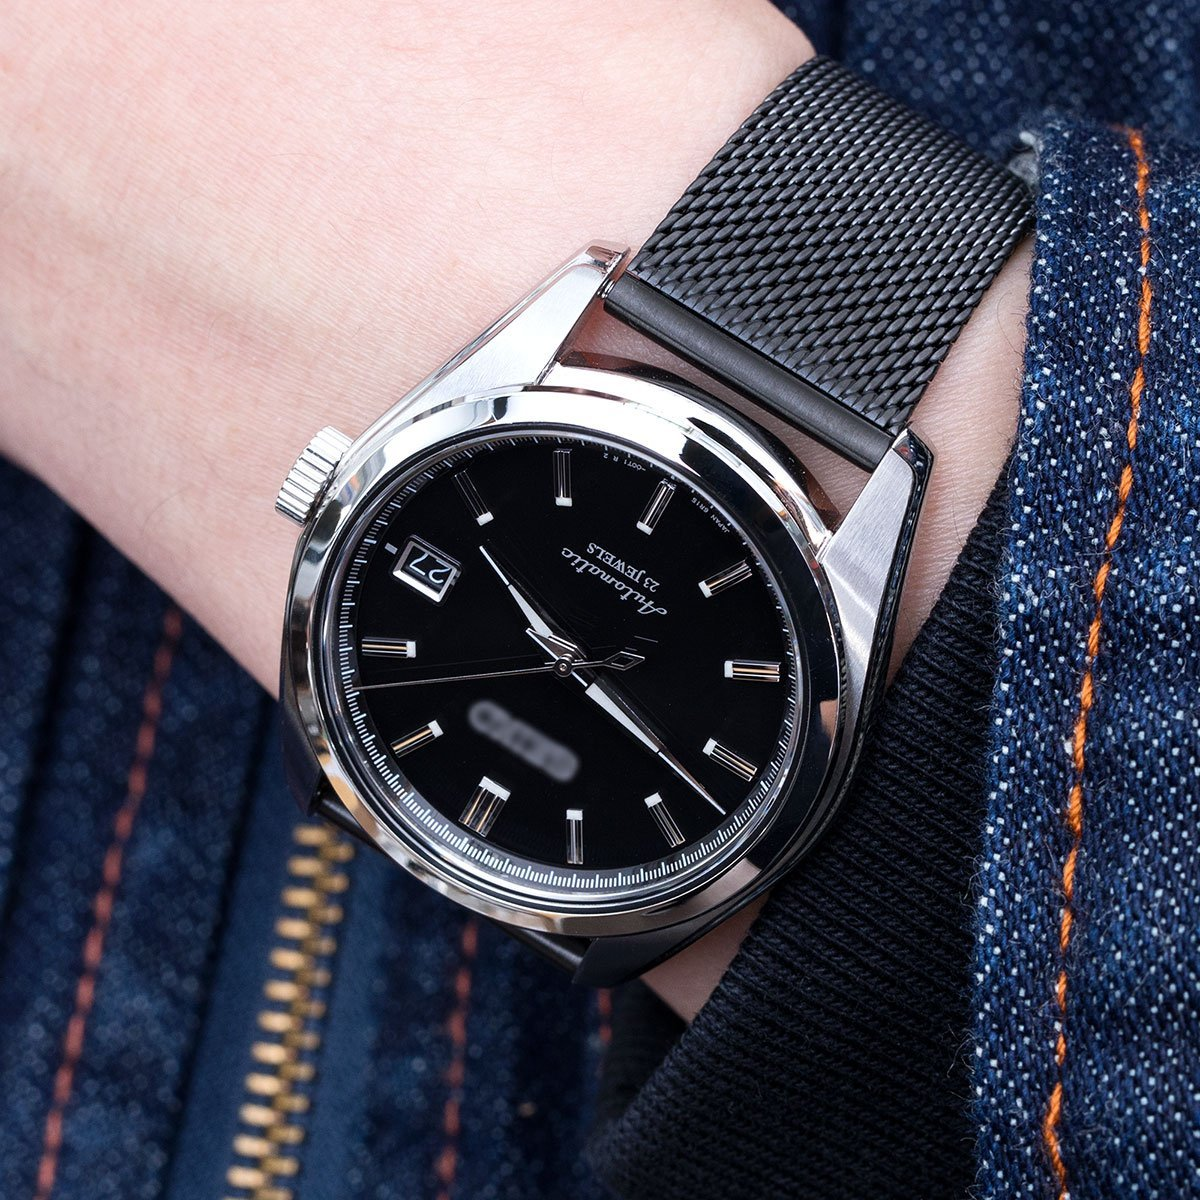 20mm Classic Vintage Knitted Superfine Wire Mesh Watch Band, PVD Black by MiLTAT (Image #2)